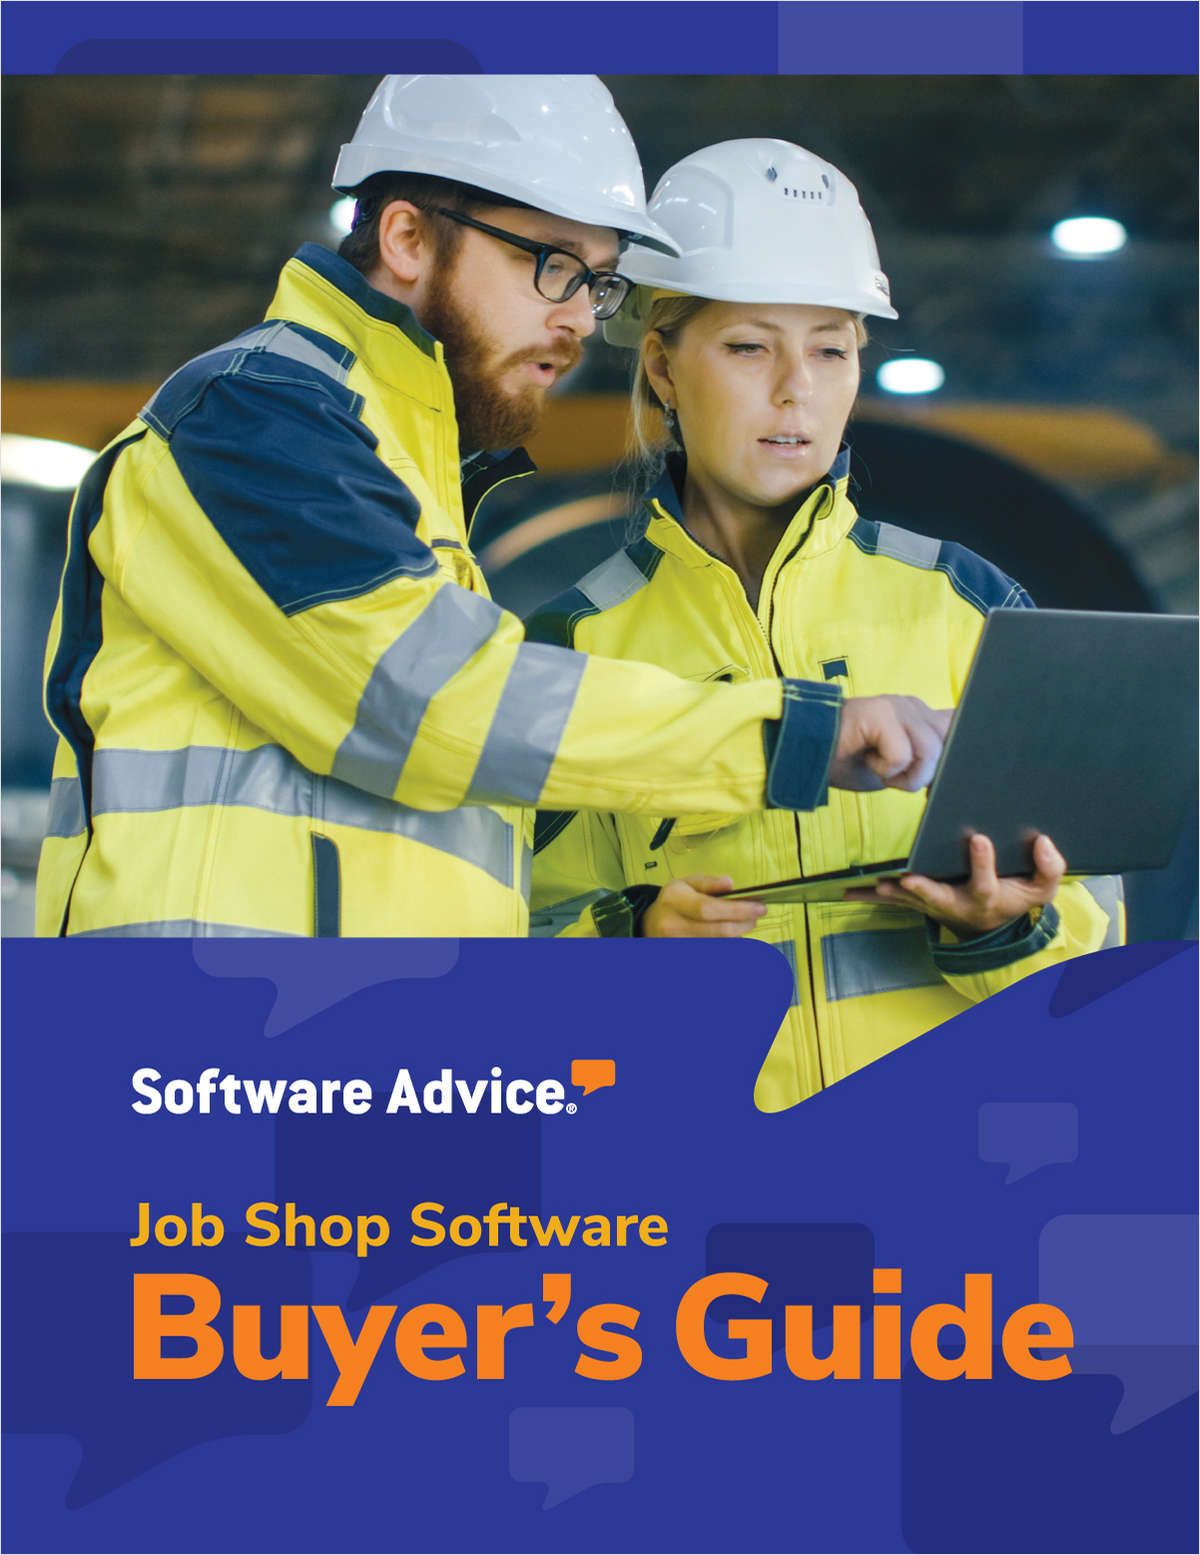 What You Need to Know Before Buying Job Shop Software